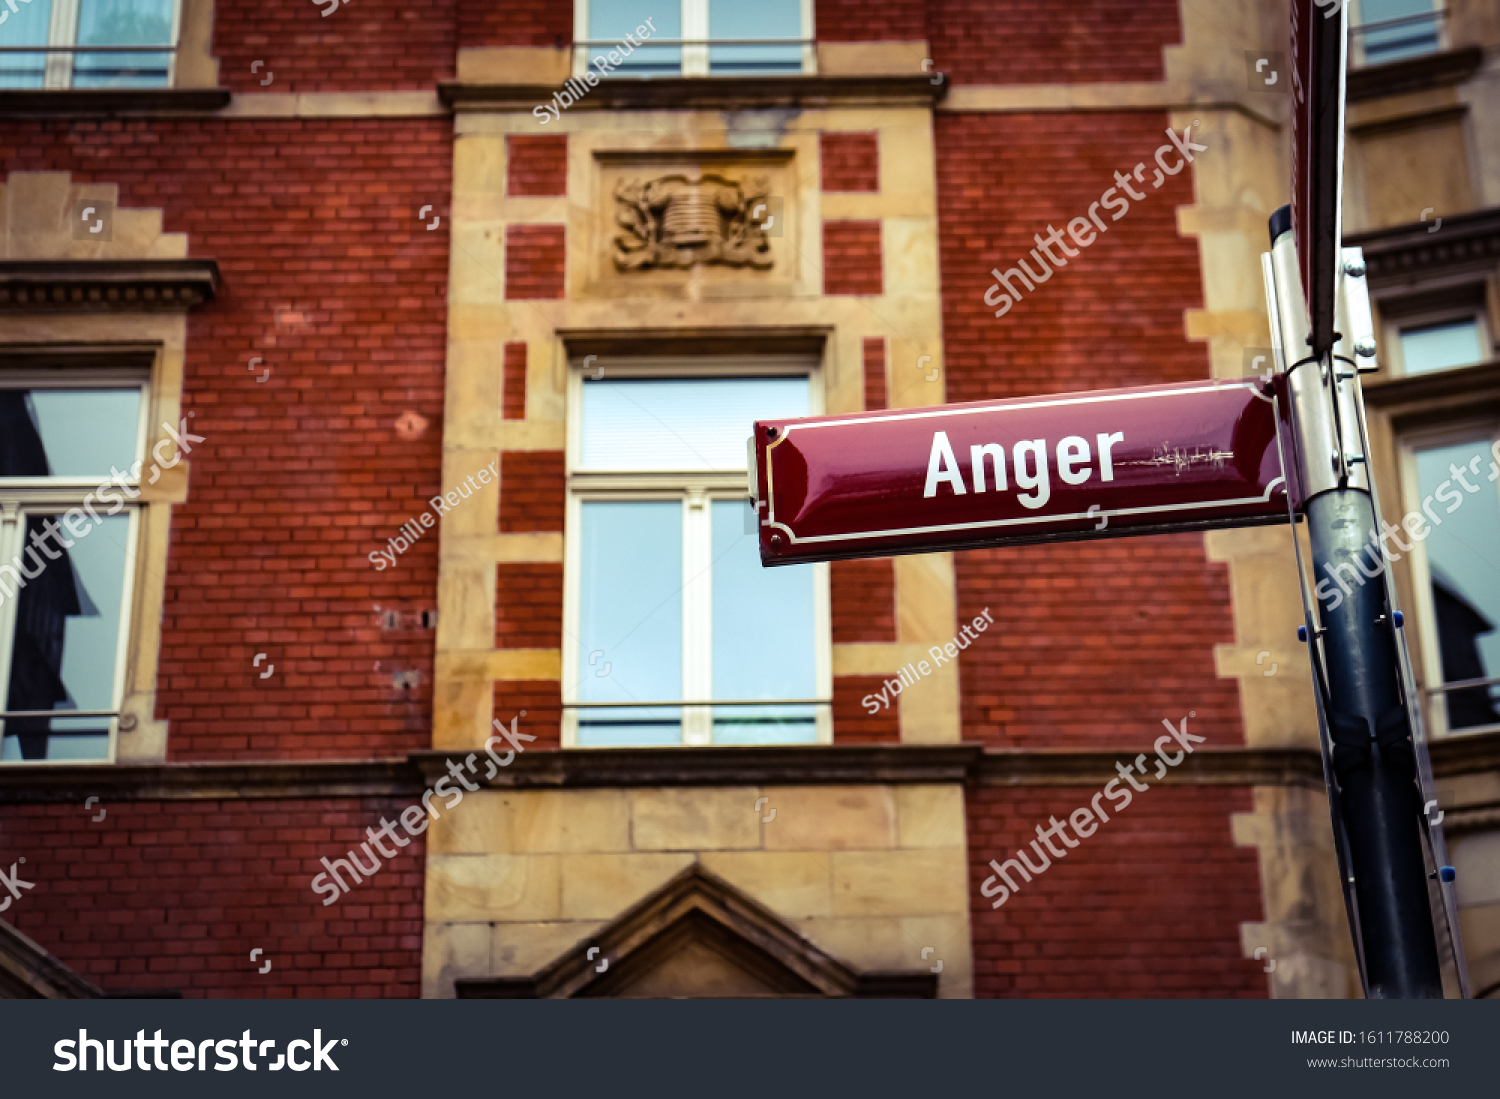 stock-photo-red-anger-street-sign-in-fro